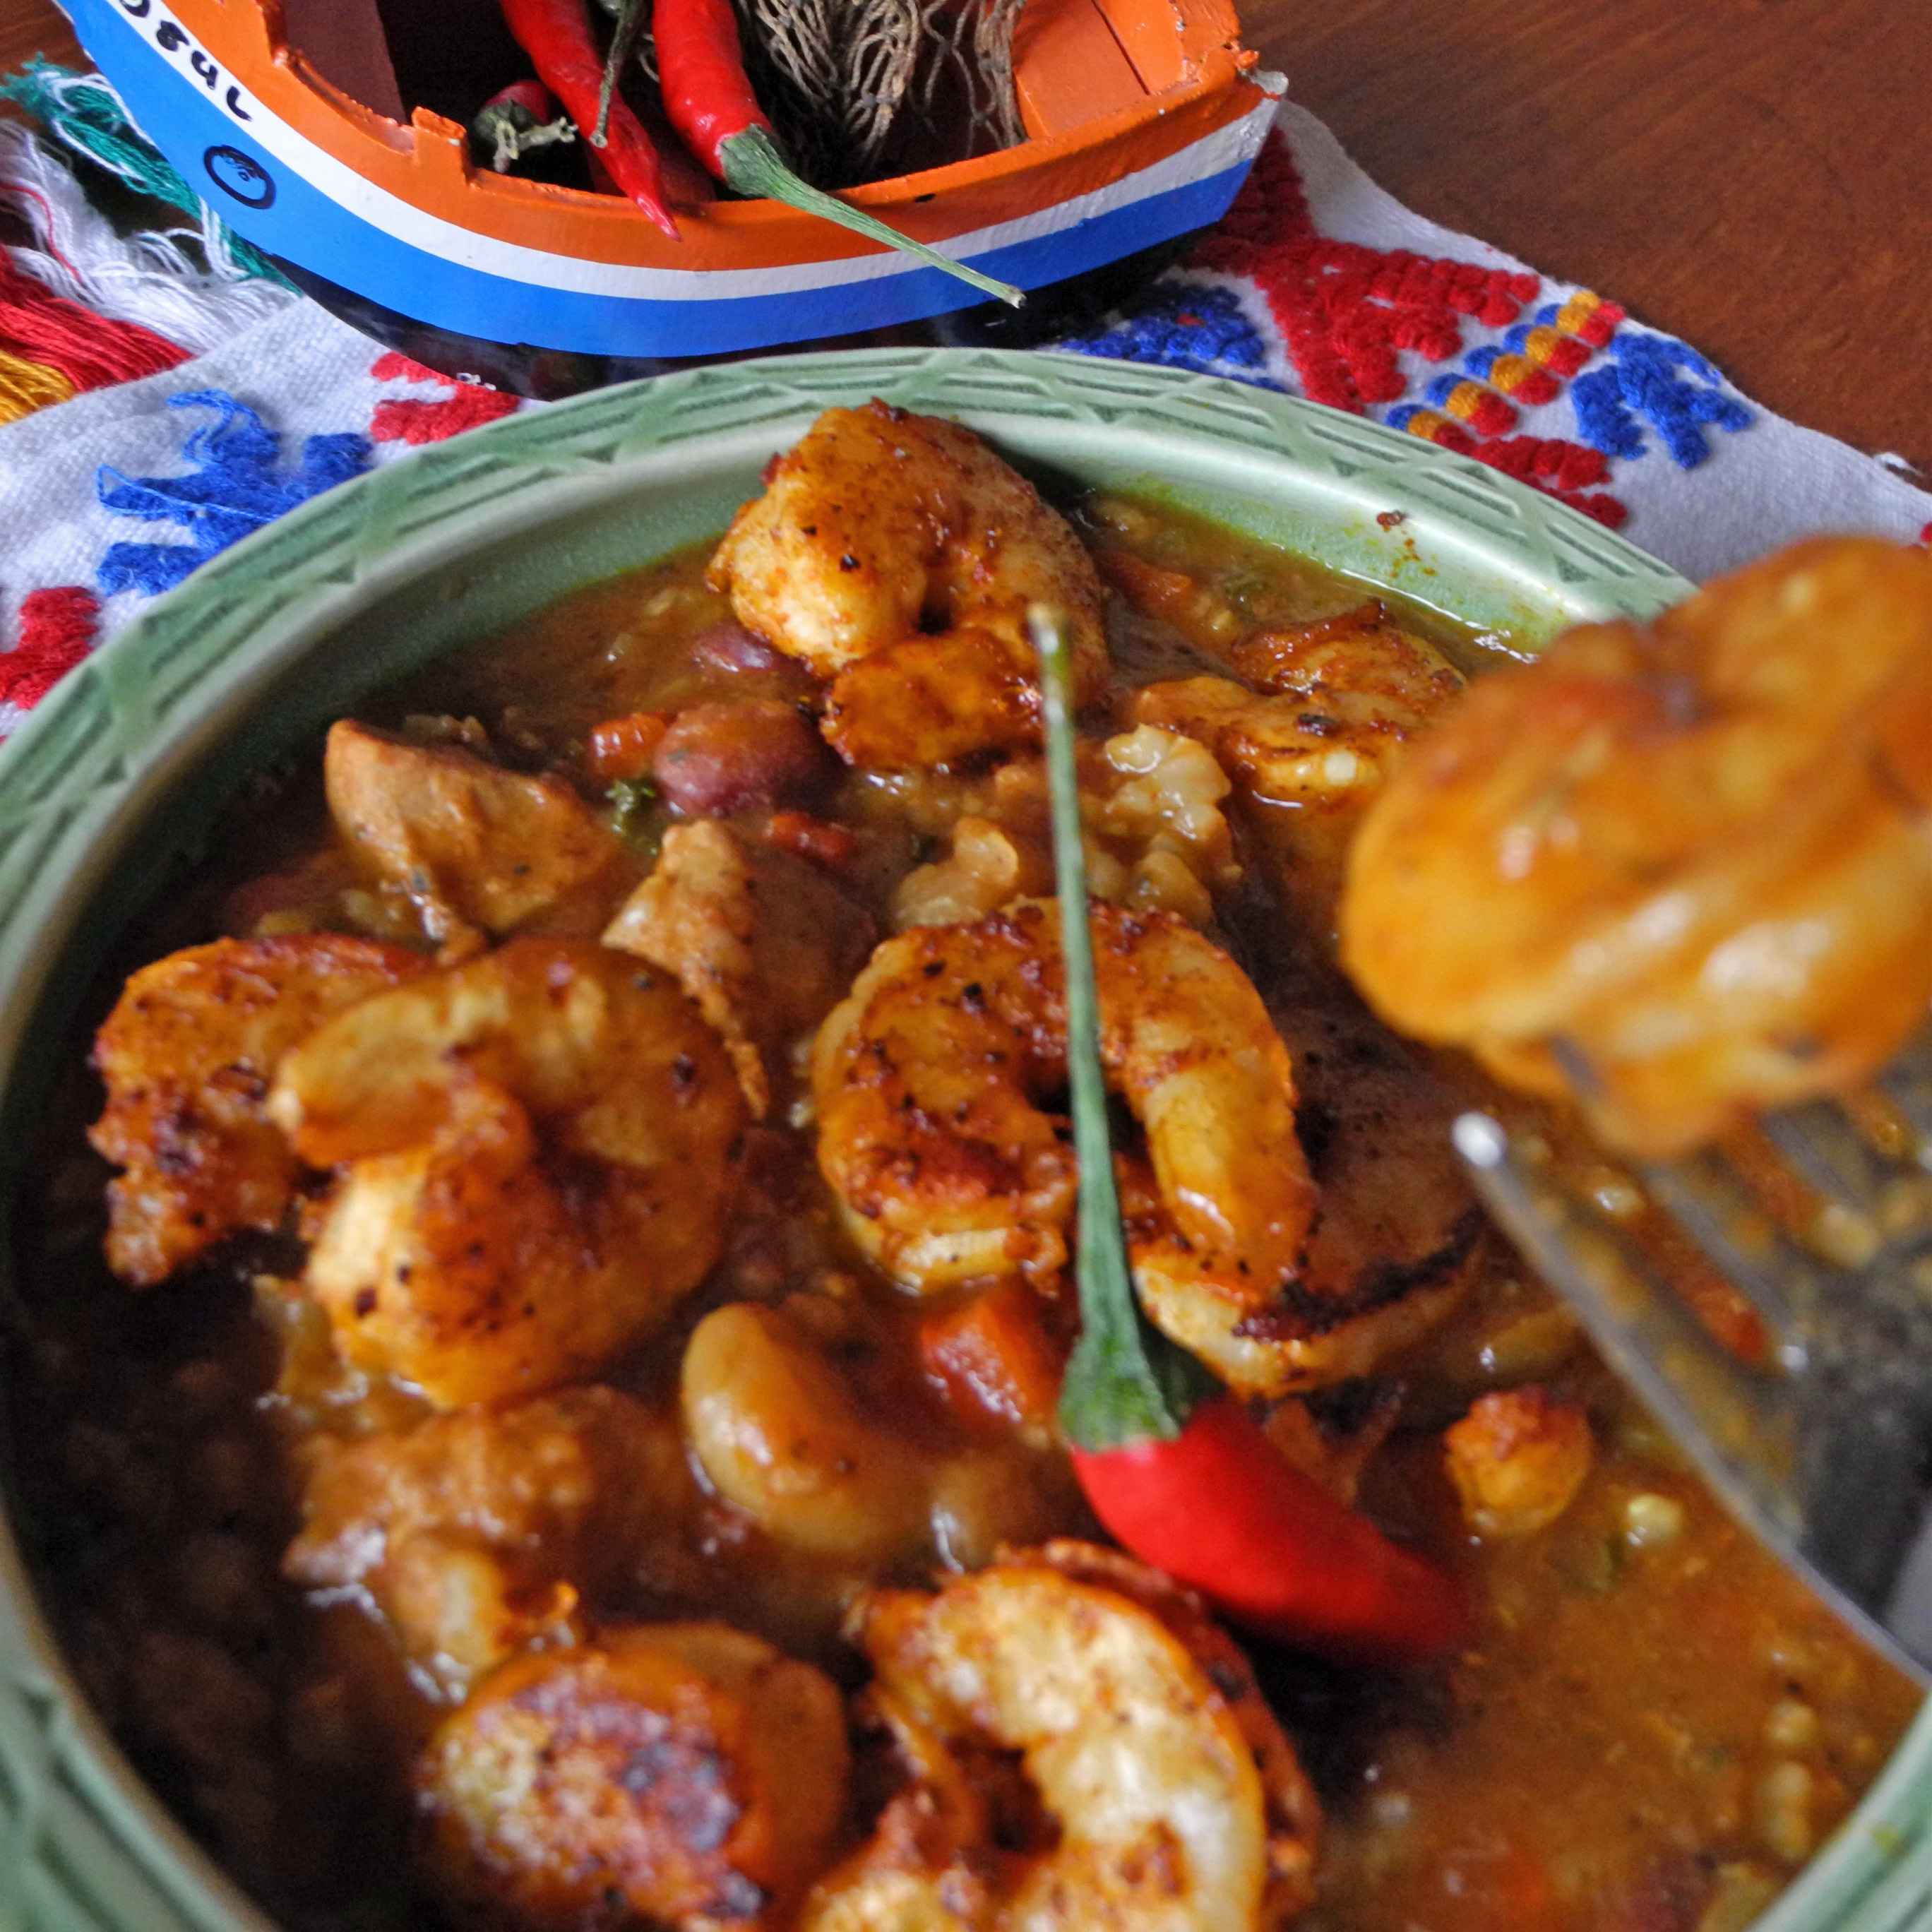 Shrimp gumbo with ancho chile spice rub